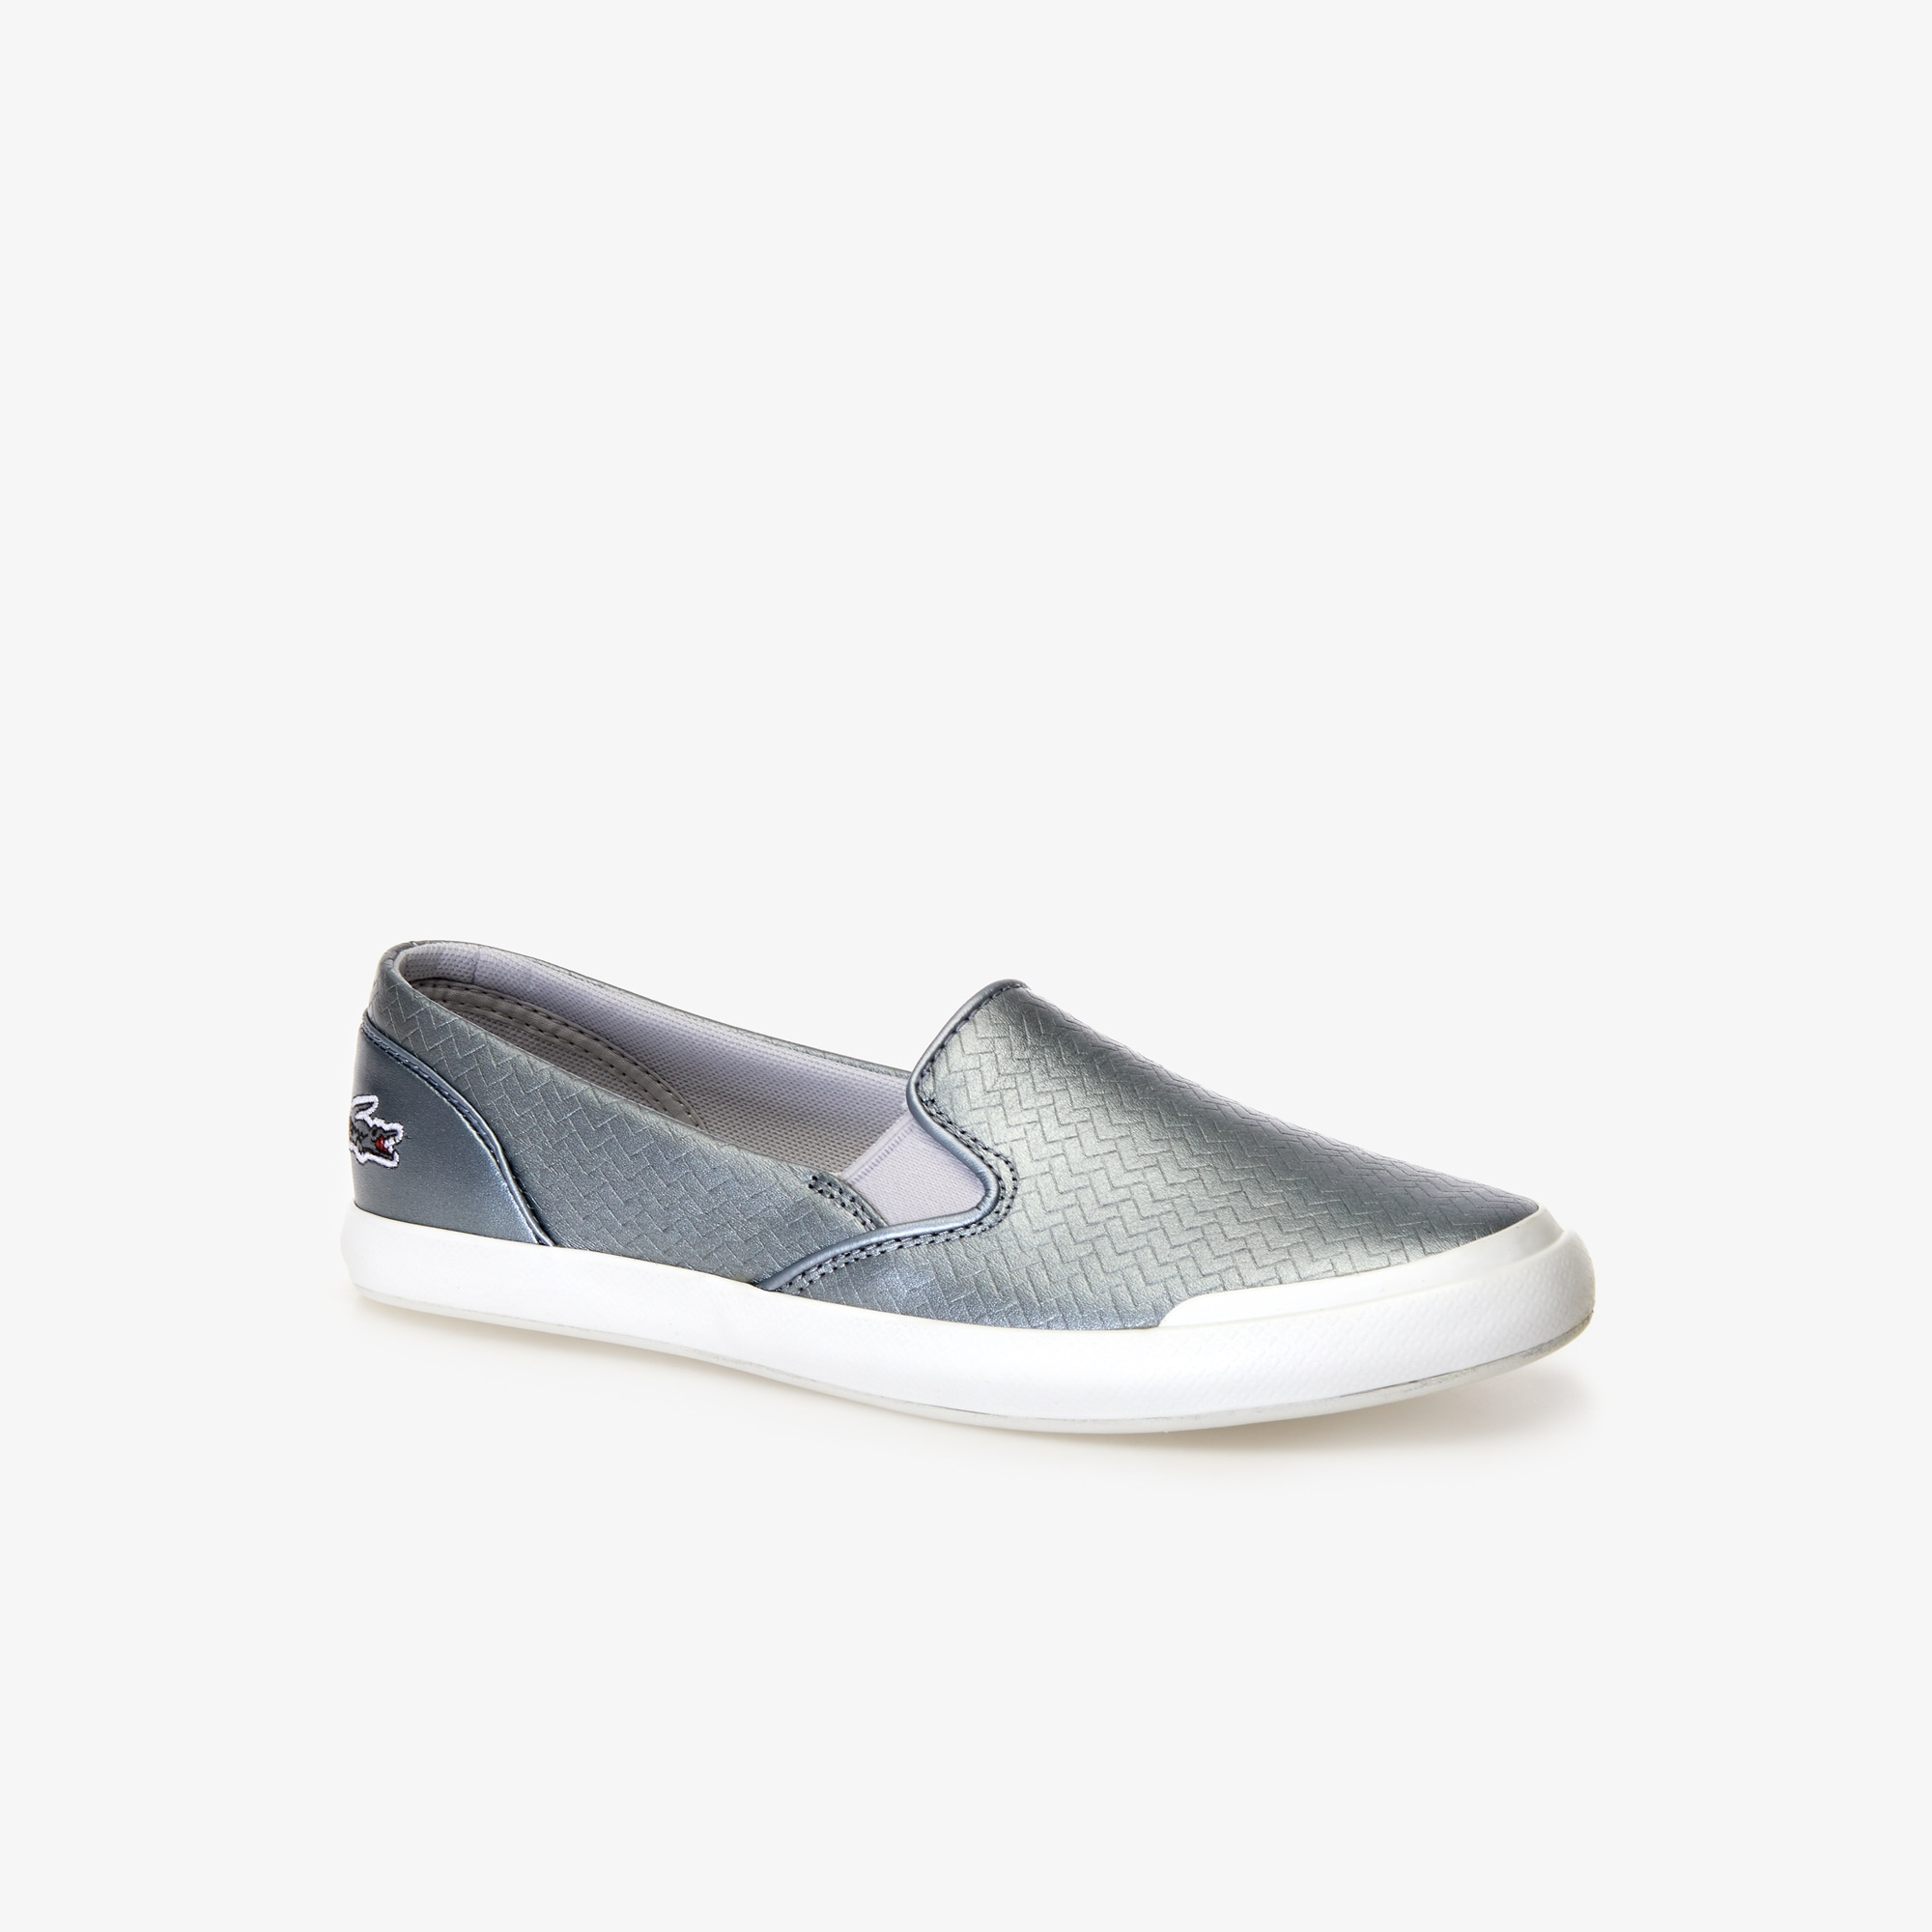 0ad9b1cb3 Women s Lancelle Leather Slip-ons